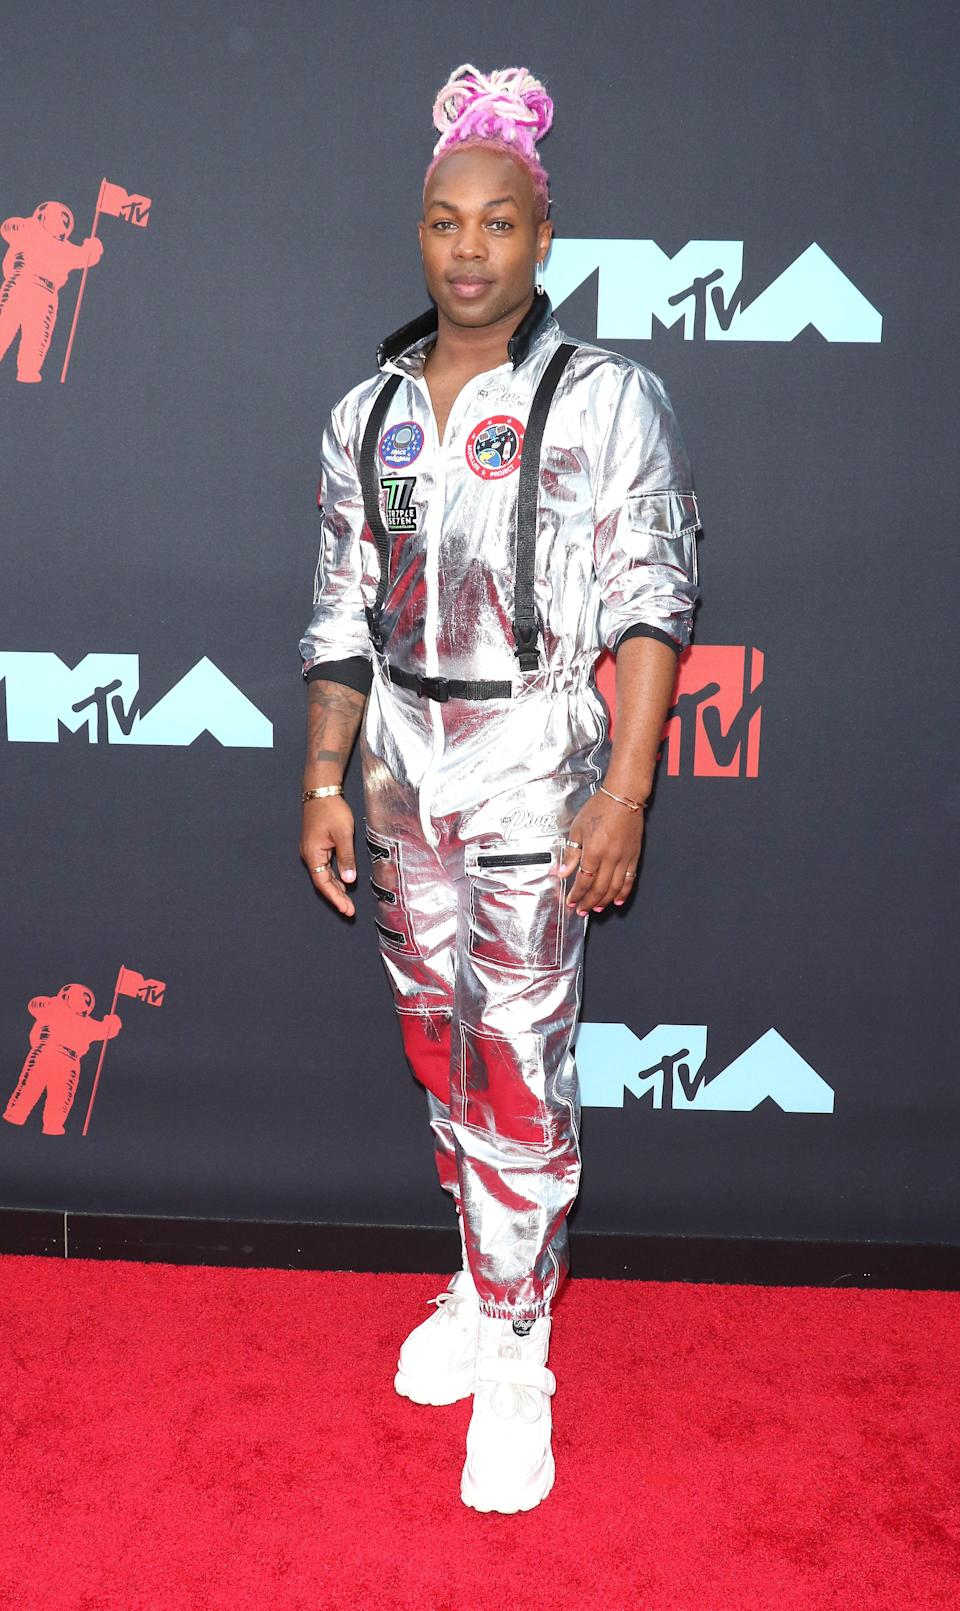 <em>Ehm…</em> sometimes it's better to let images speak for themselves but this 'fit from Todrick Hall certainly <em>did not</em> make this list for its fashion merits.